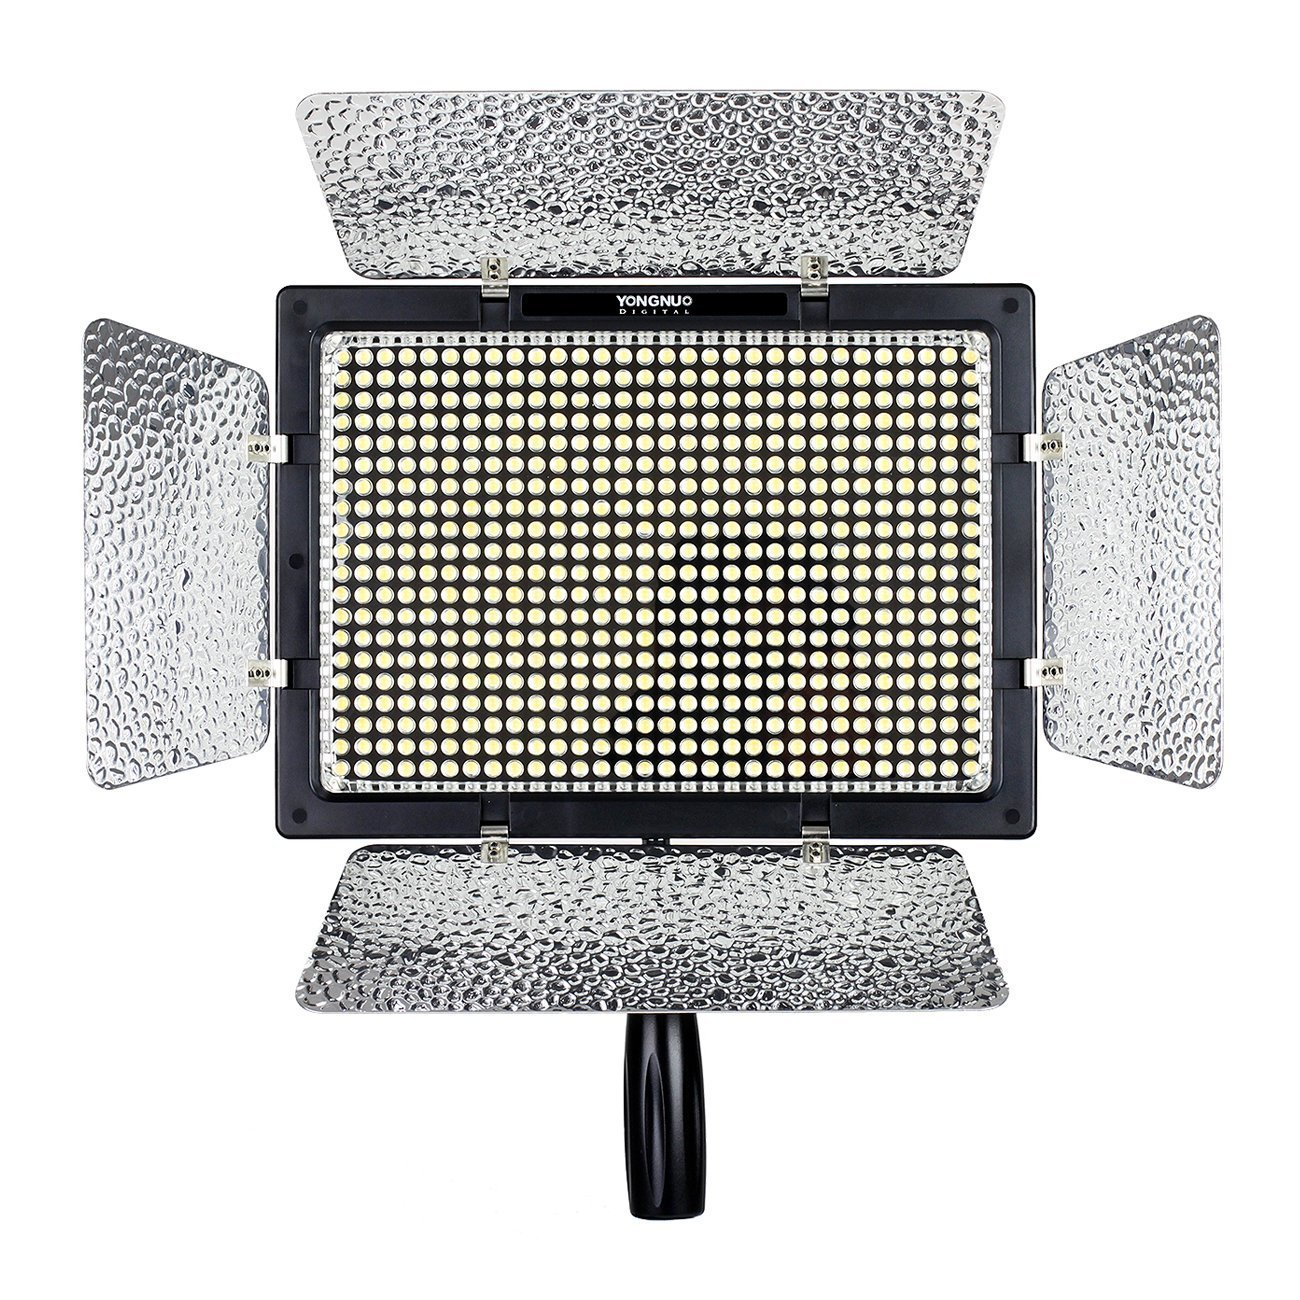 YONGNUO YN600II YN600L II Pro LED Video Light/LED Studio Light with 3200-5500K Color Temperature and Adjustable Brightness for The SLR Cameras Camcorders by YONGNUO